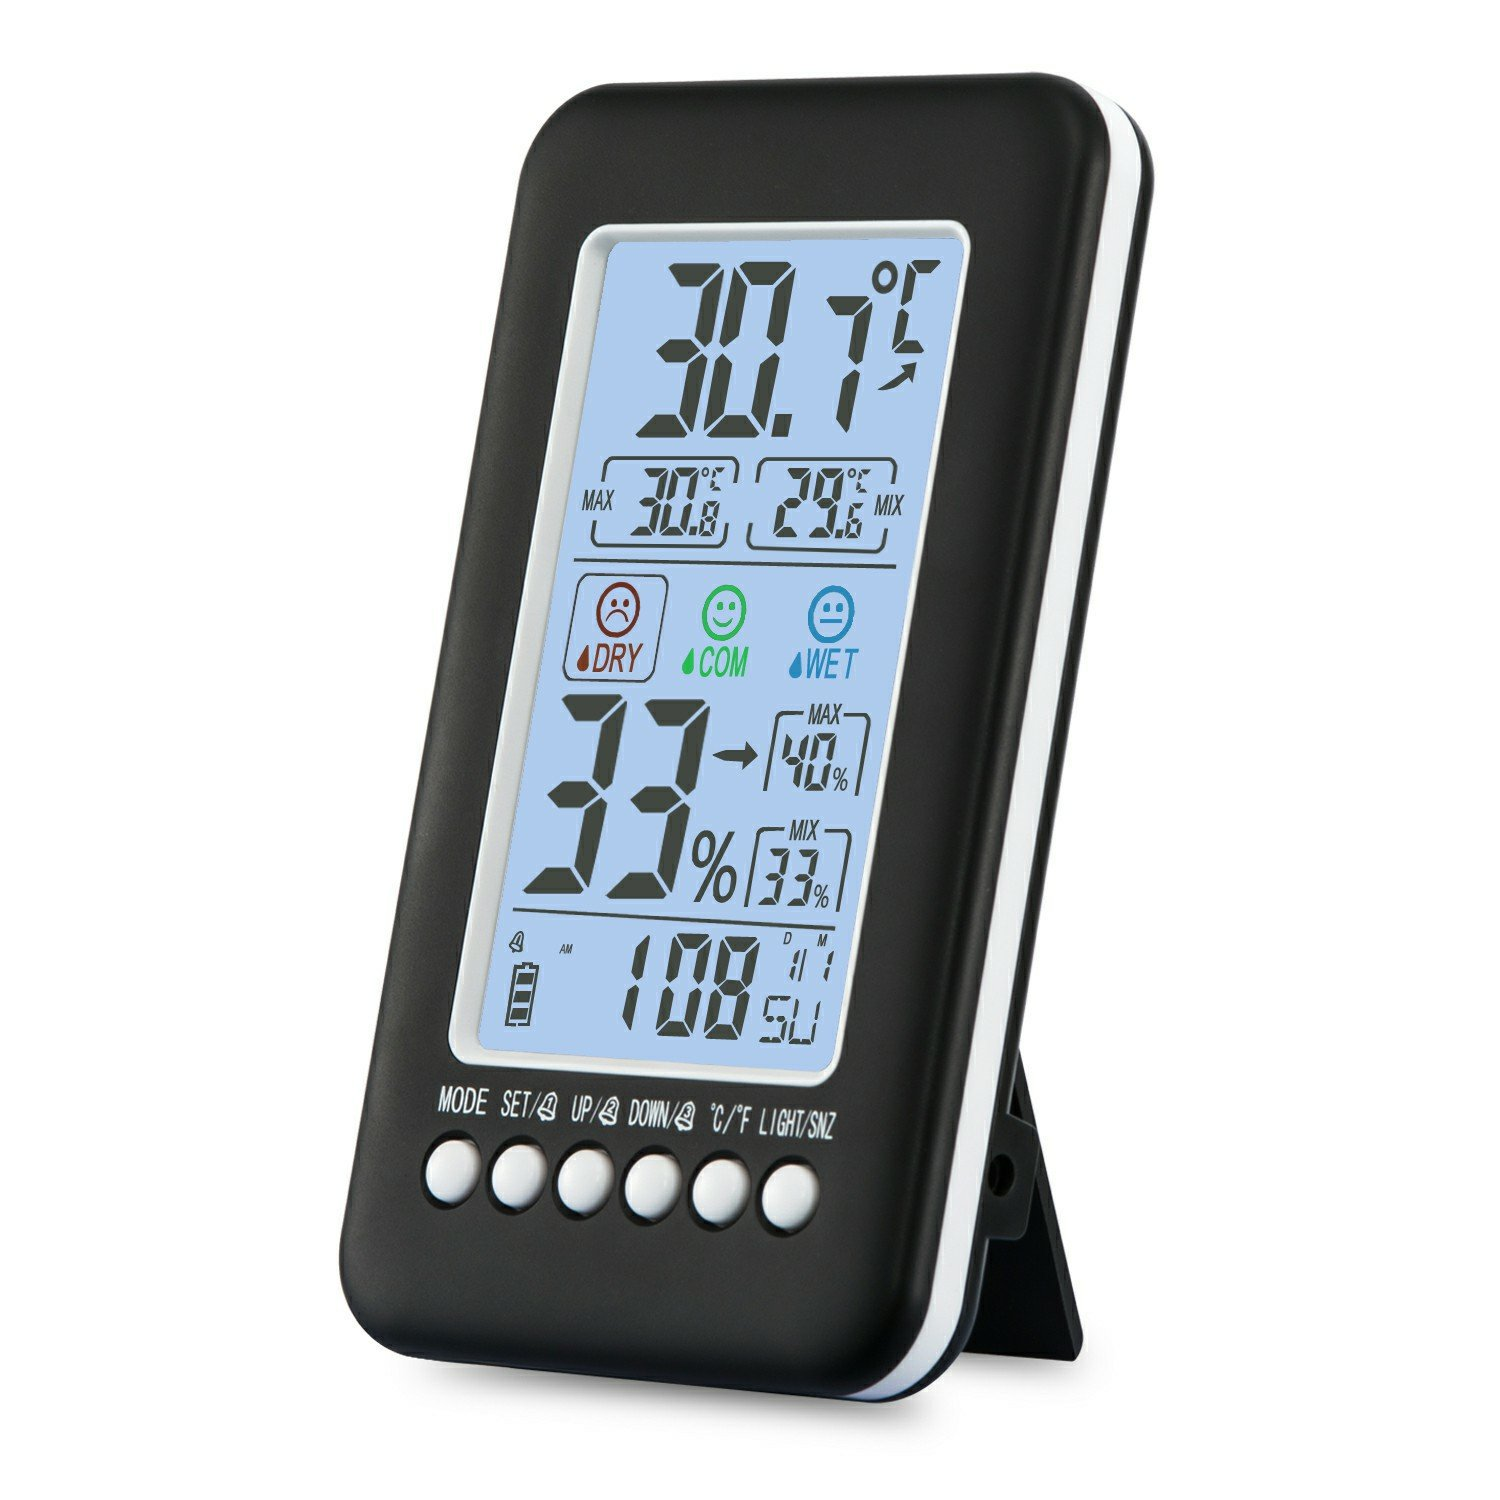 MIEO Humidity Monitor with Indoor Thermometer, Digital Hygrometer and Humidity Gauge Indicator with Alarm Clock Acoustic Control Backlight Humidity Monitor Meter for Home, Office, Greenhouse CJ-3315